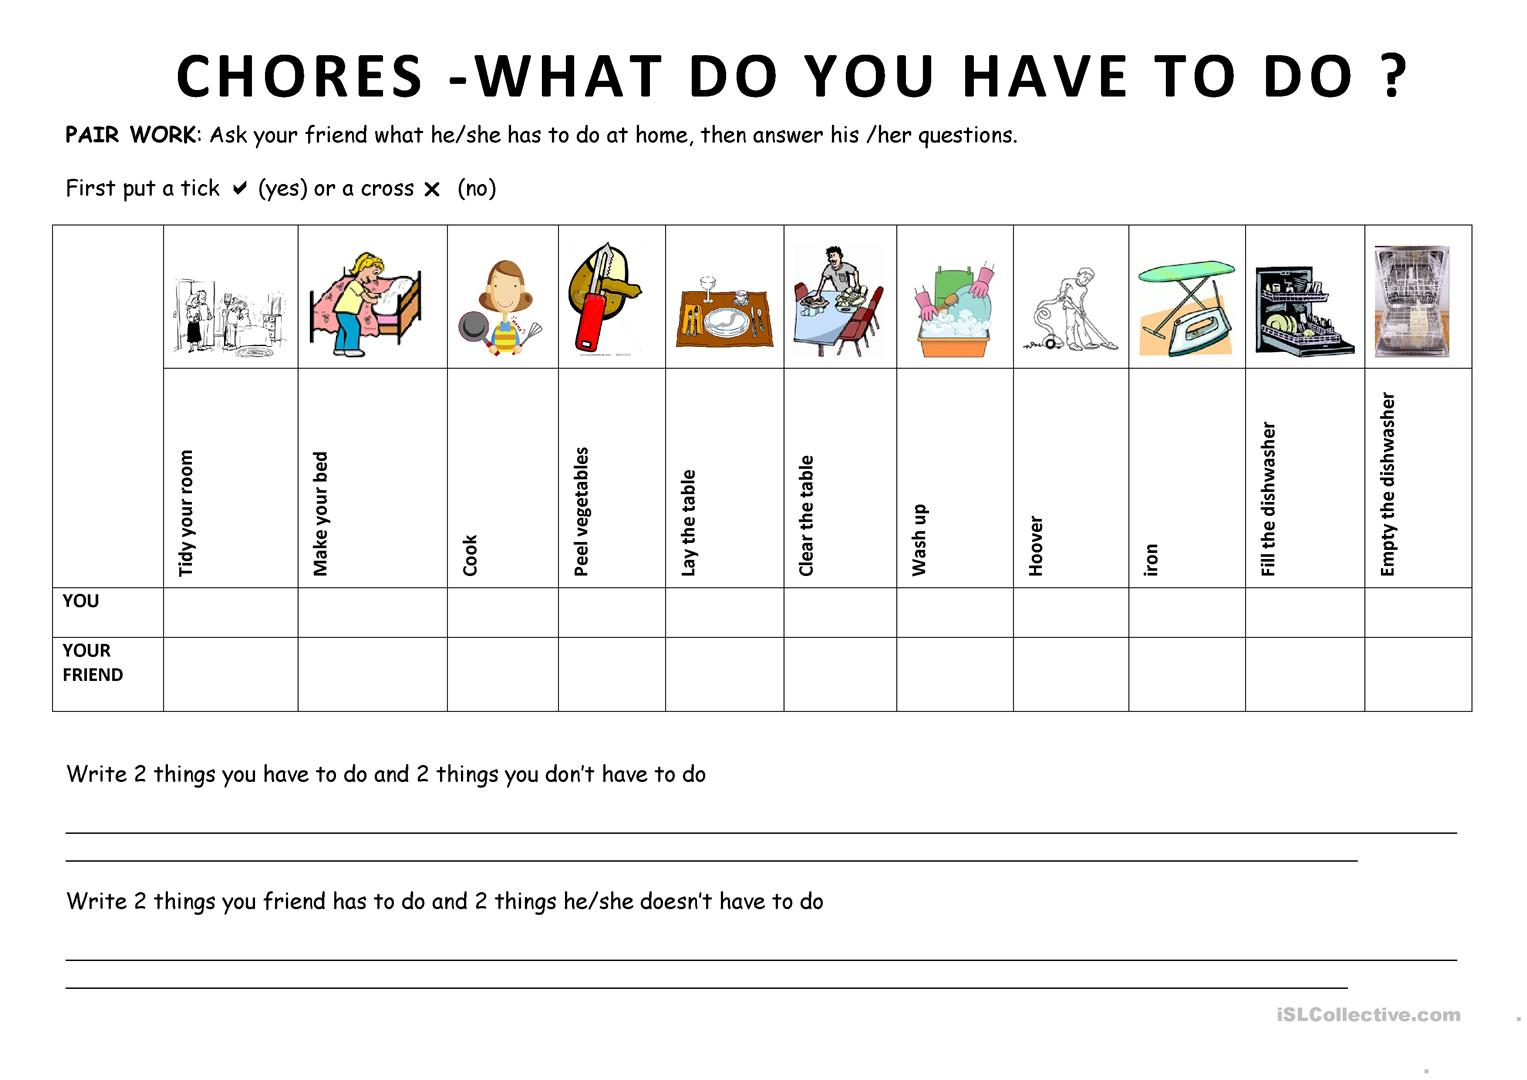 Chores 6 What Do You Have To Do Worksheet